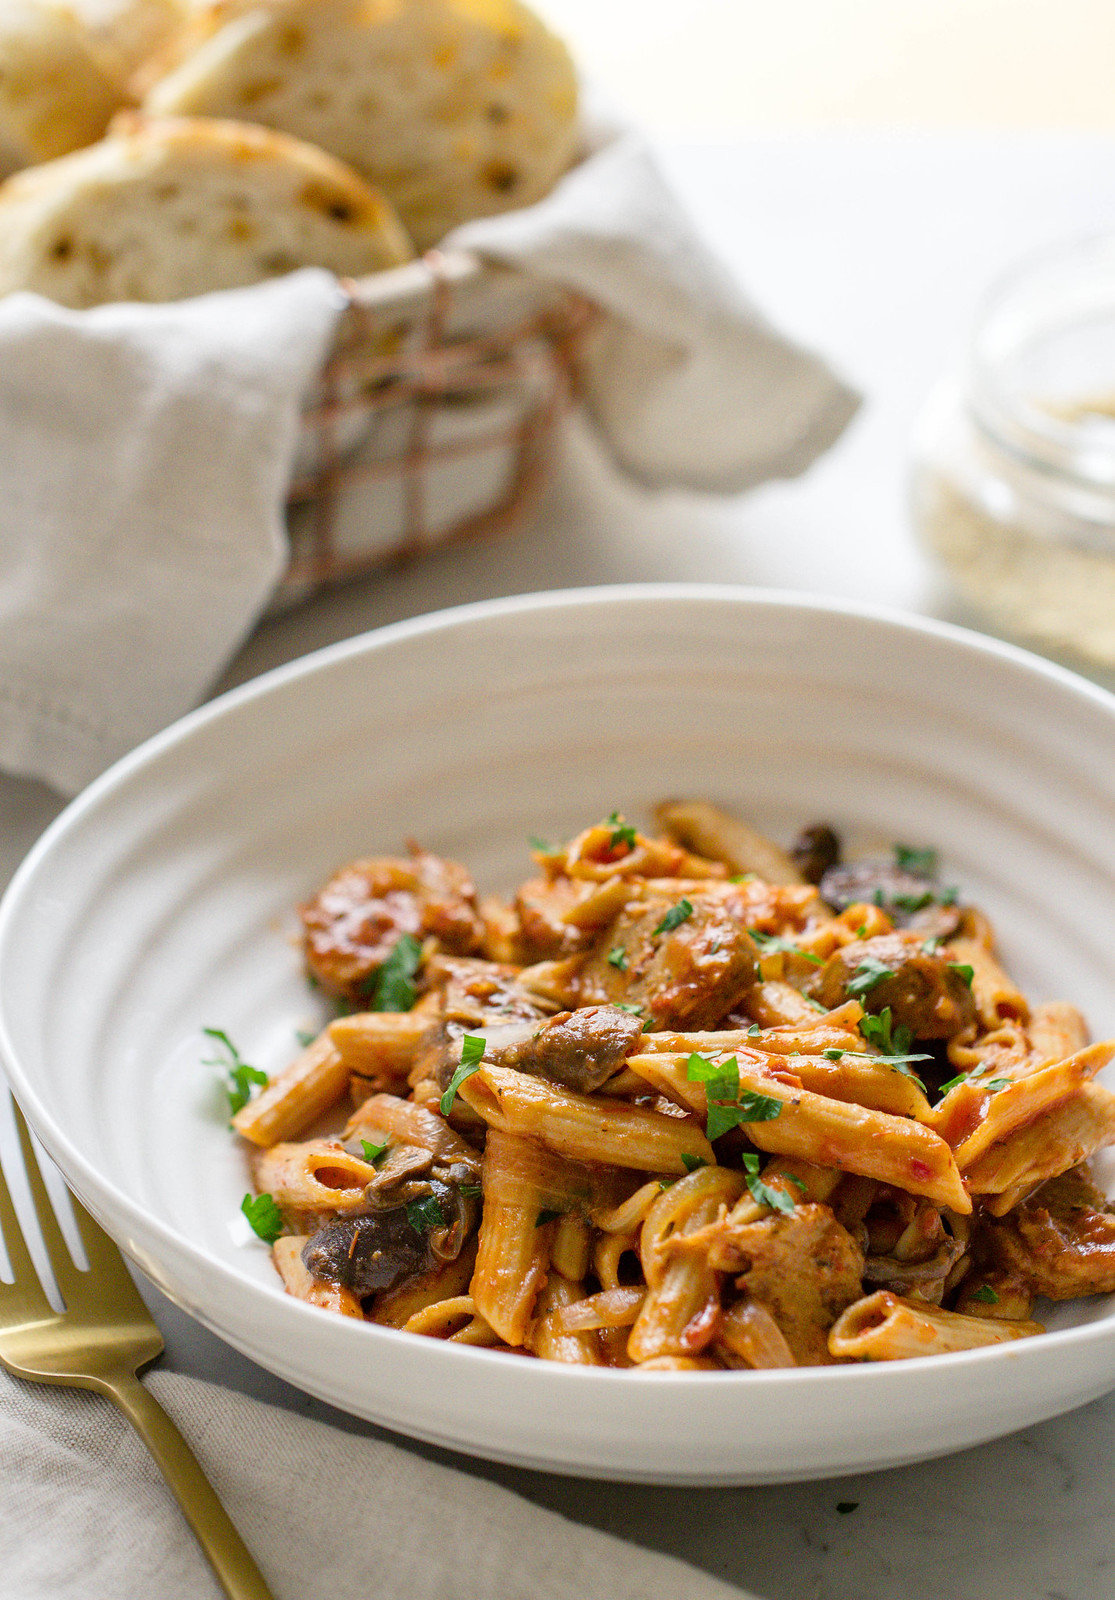 ONE POT WONDER PASTA W/ MUSHROOMS + SAUSAGE